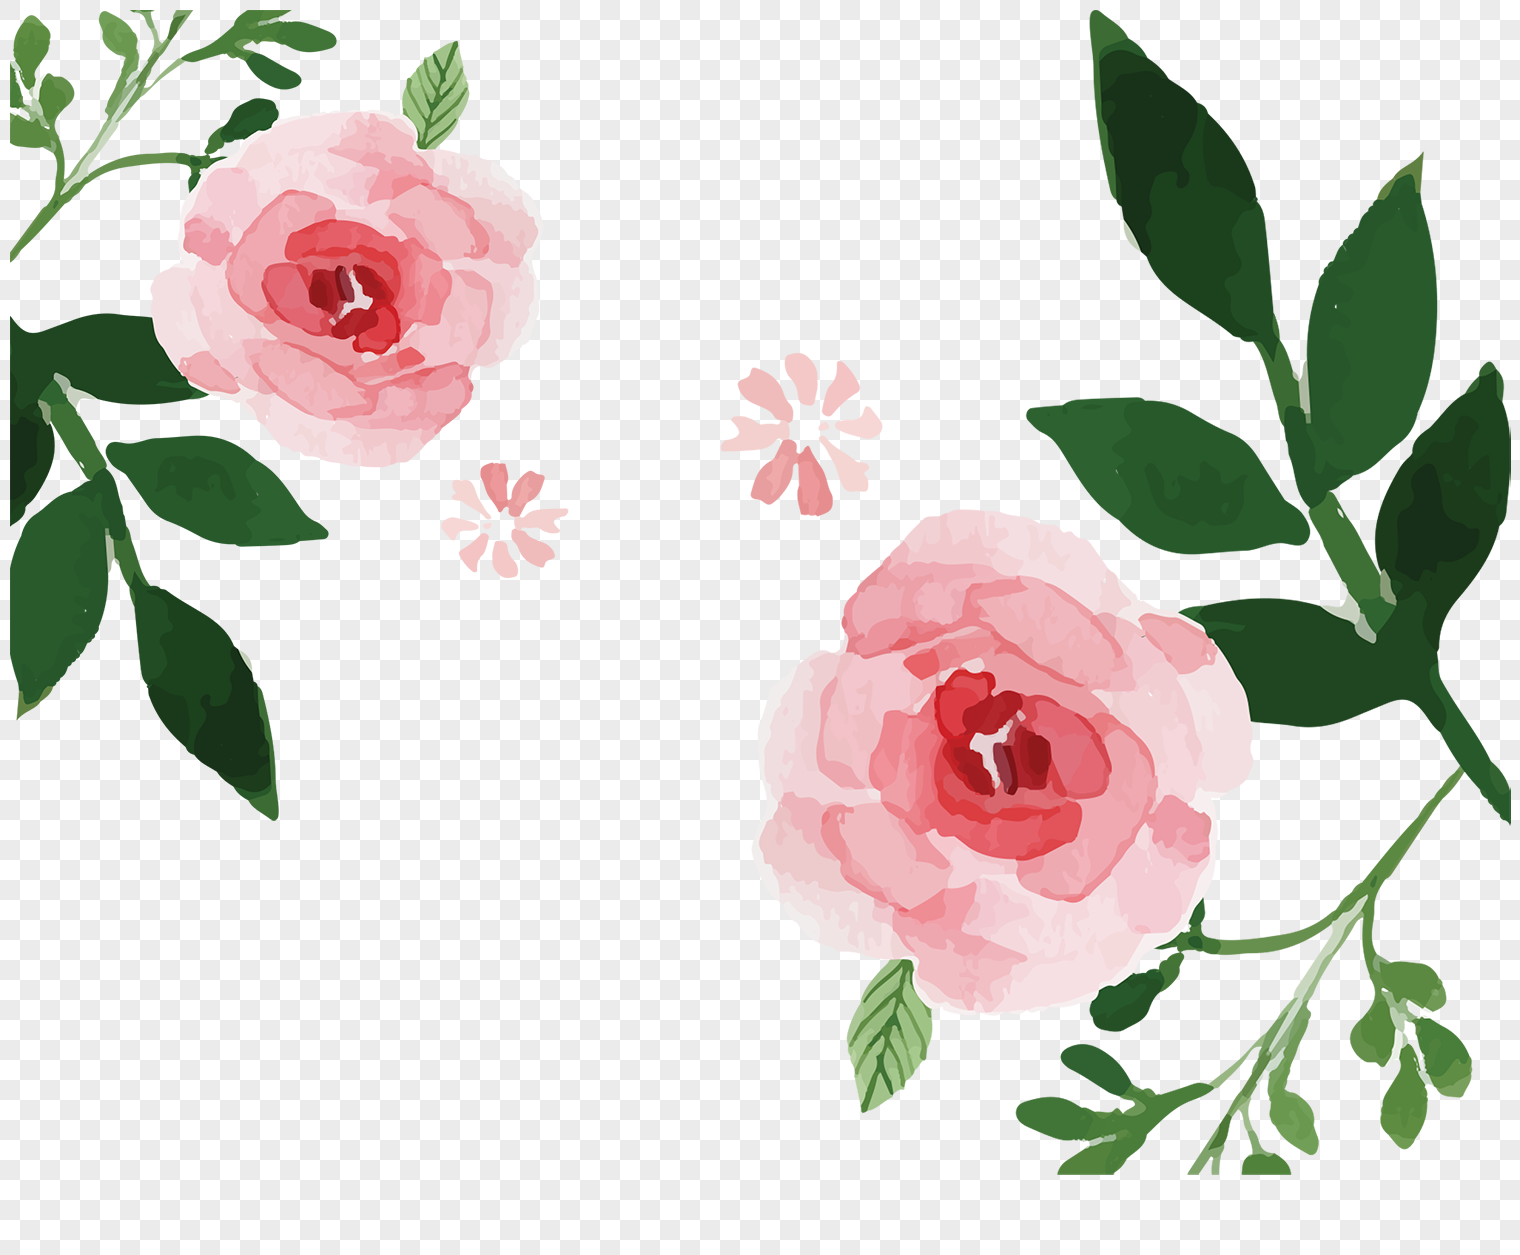 Cartoon Hand Painted Pink Beauty Flowers Png Imagepicture Free